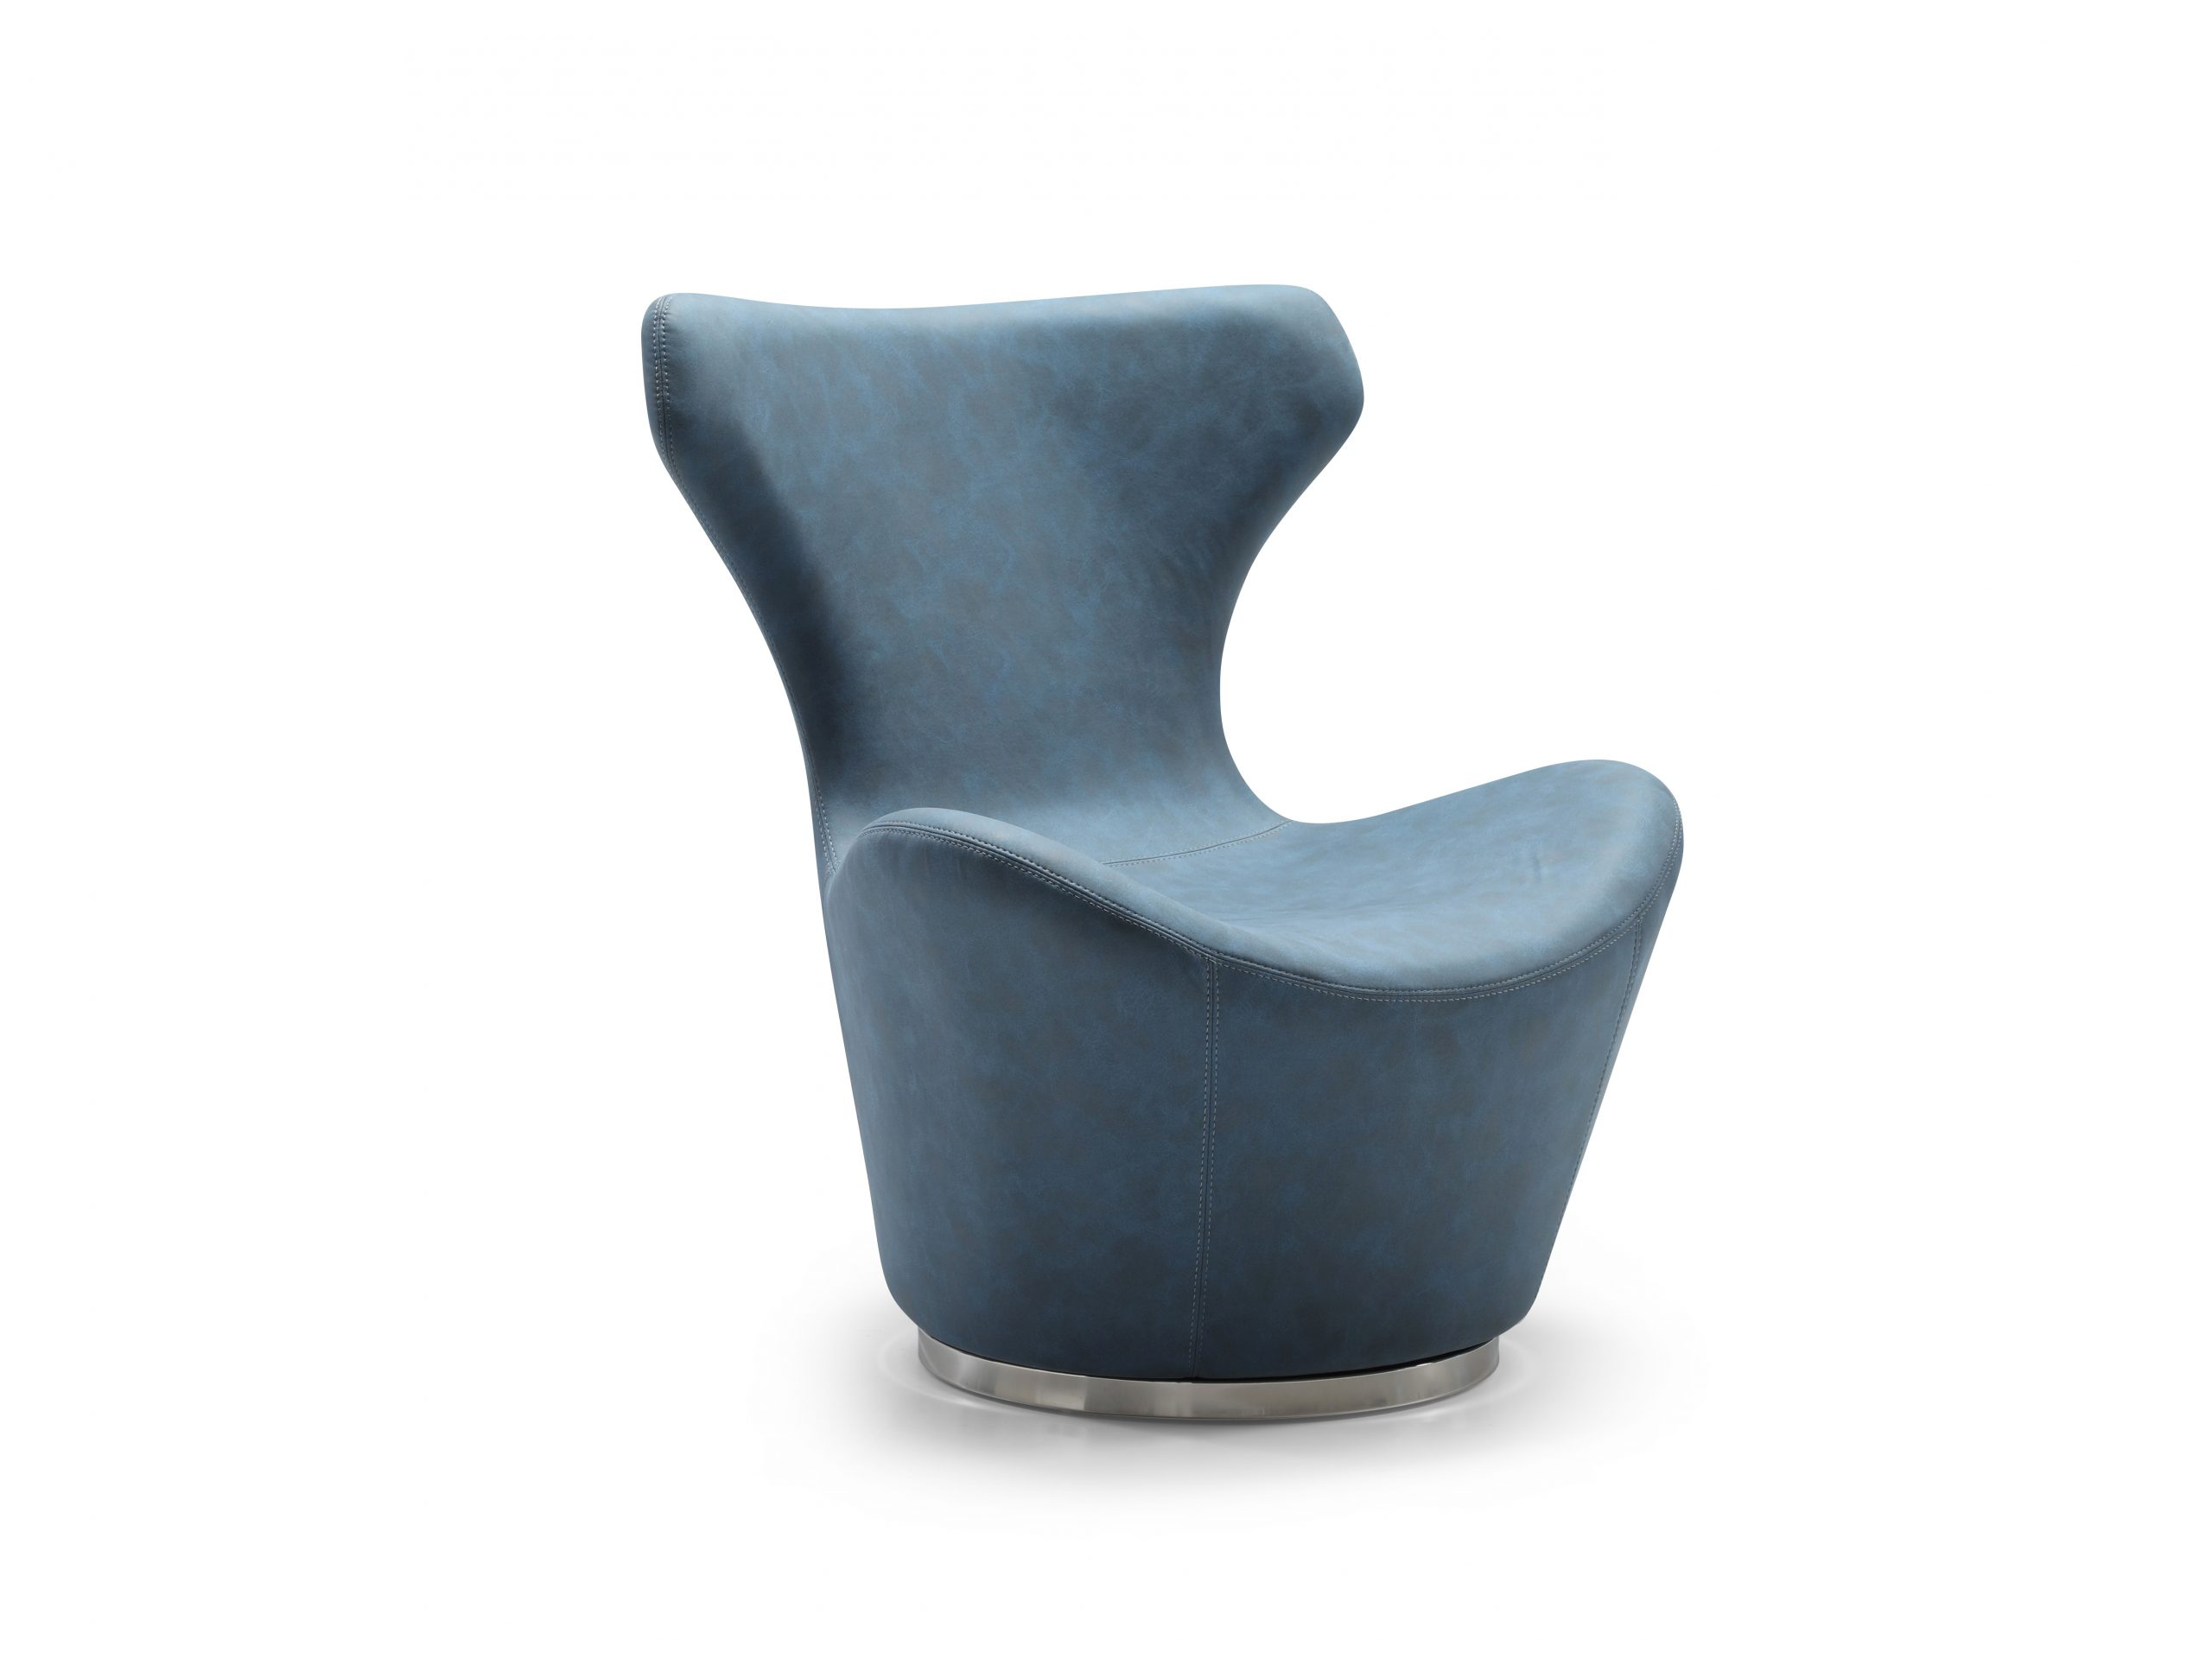 The Easton Swivel Leisure Chair is available in blue or light grey, waterproof fabric. It's complimented with a beautifully polished stainless steel base.